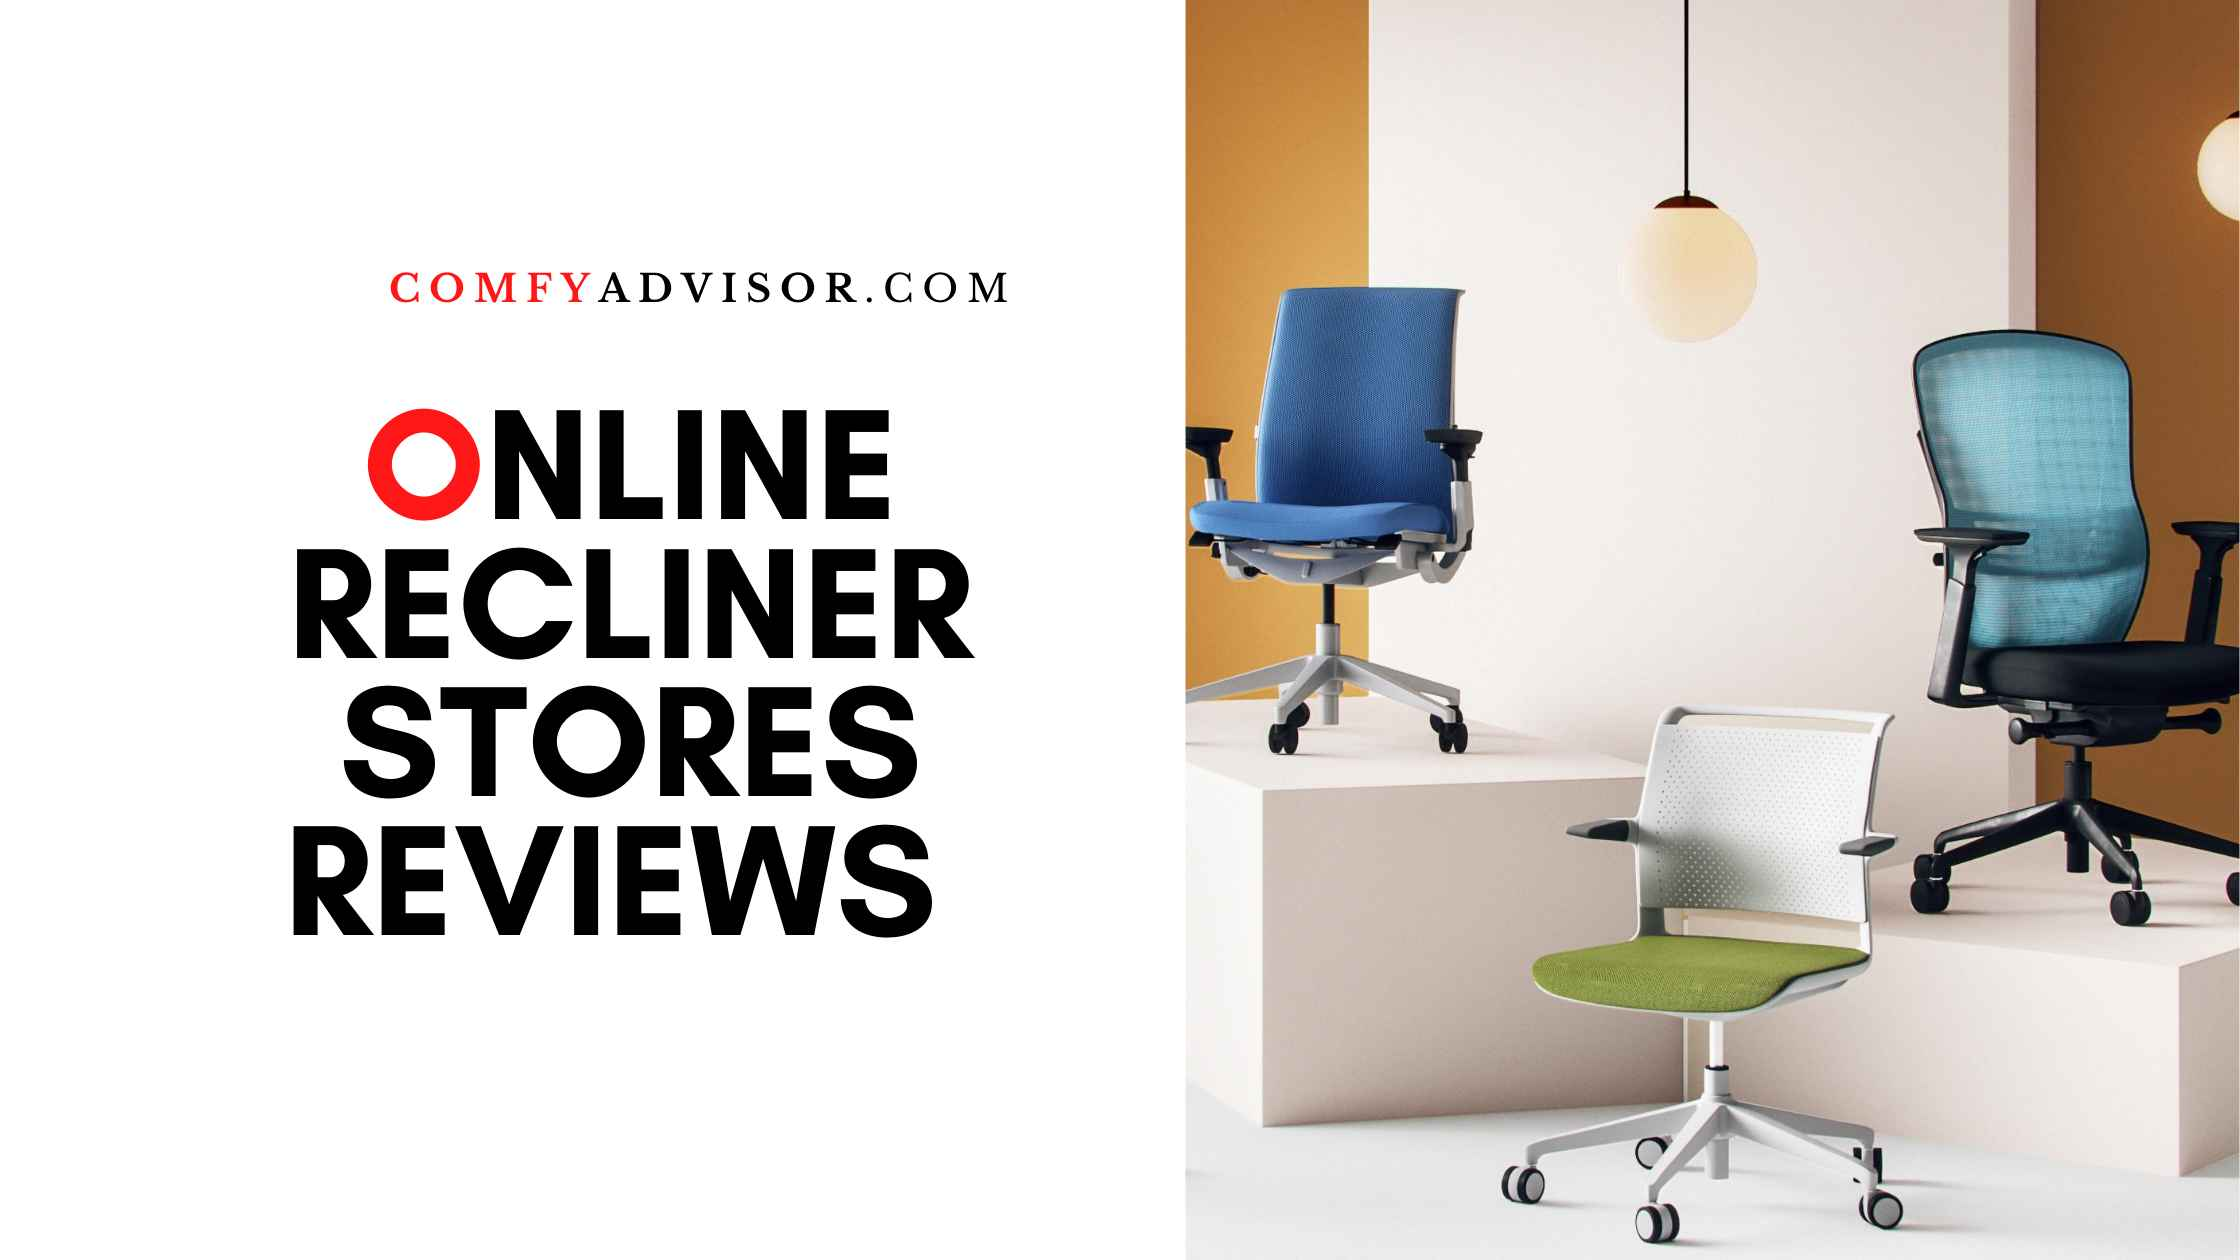 Online Recliner Stores Reviews